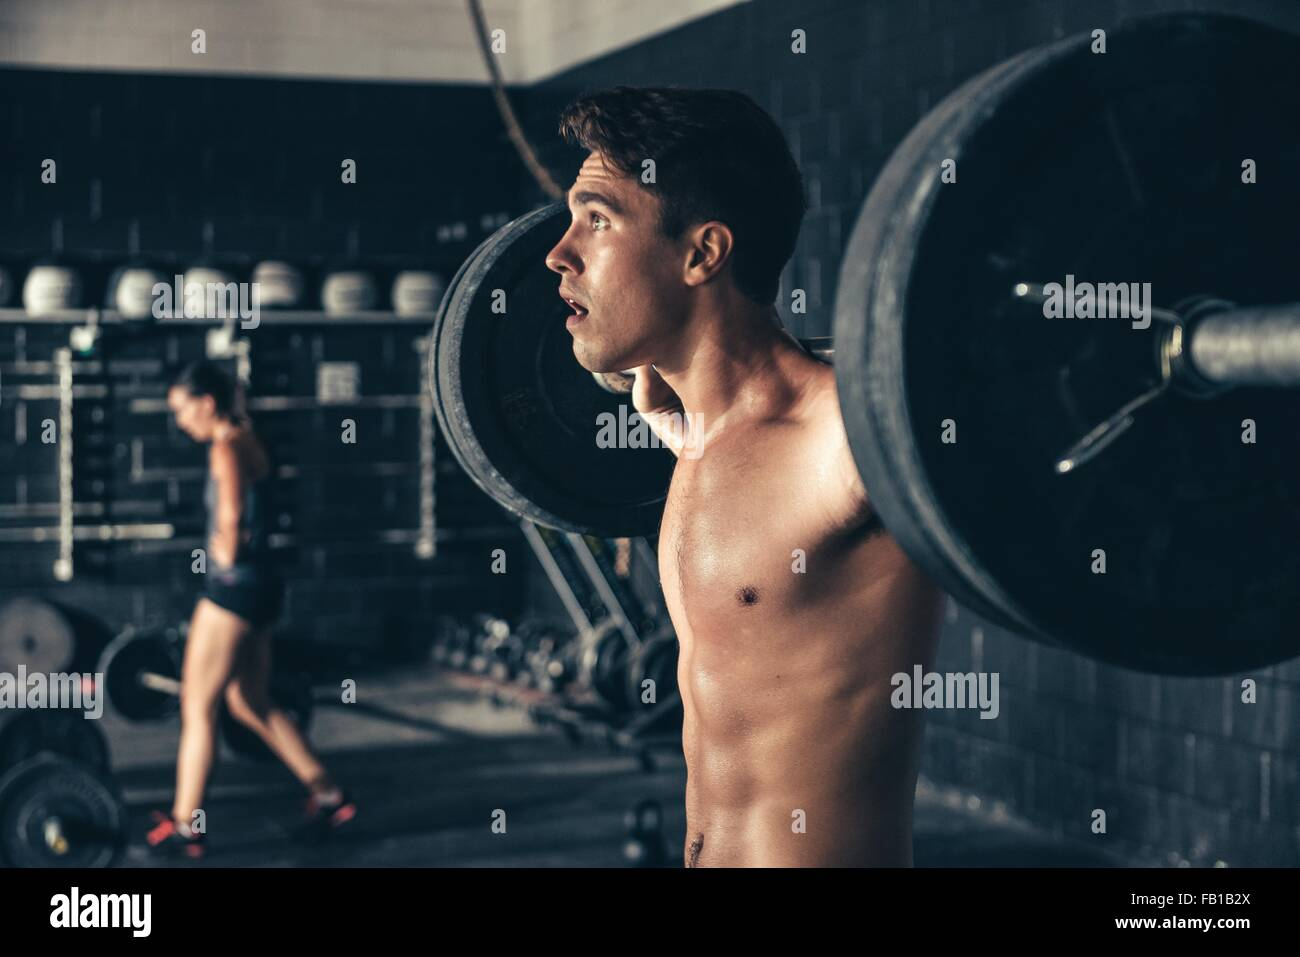 Man lifting barbell on shoulders in gym - Stock Image